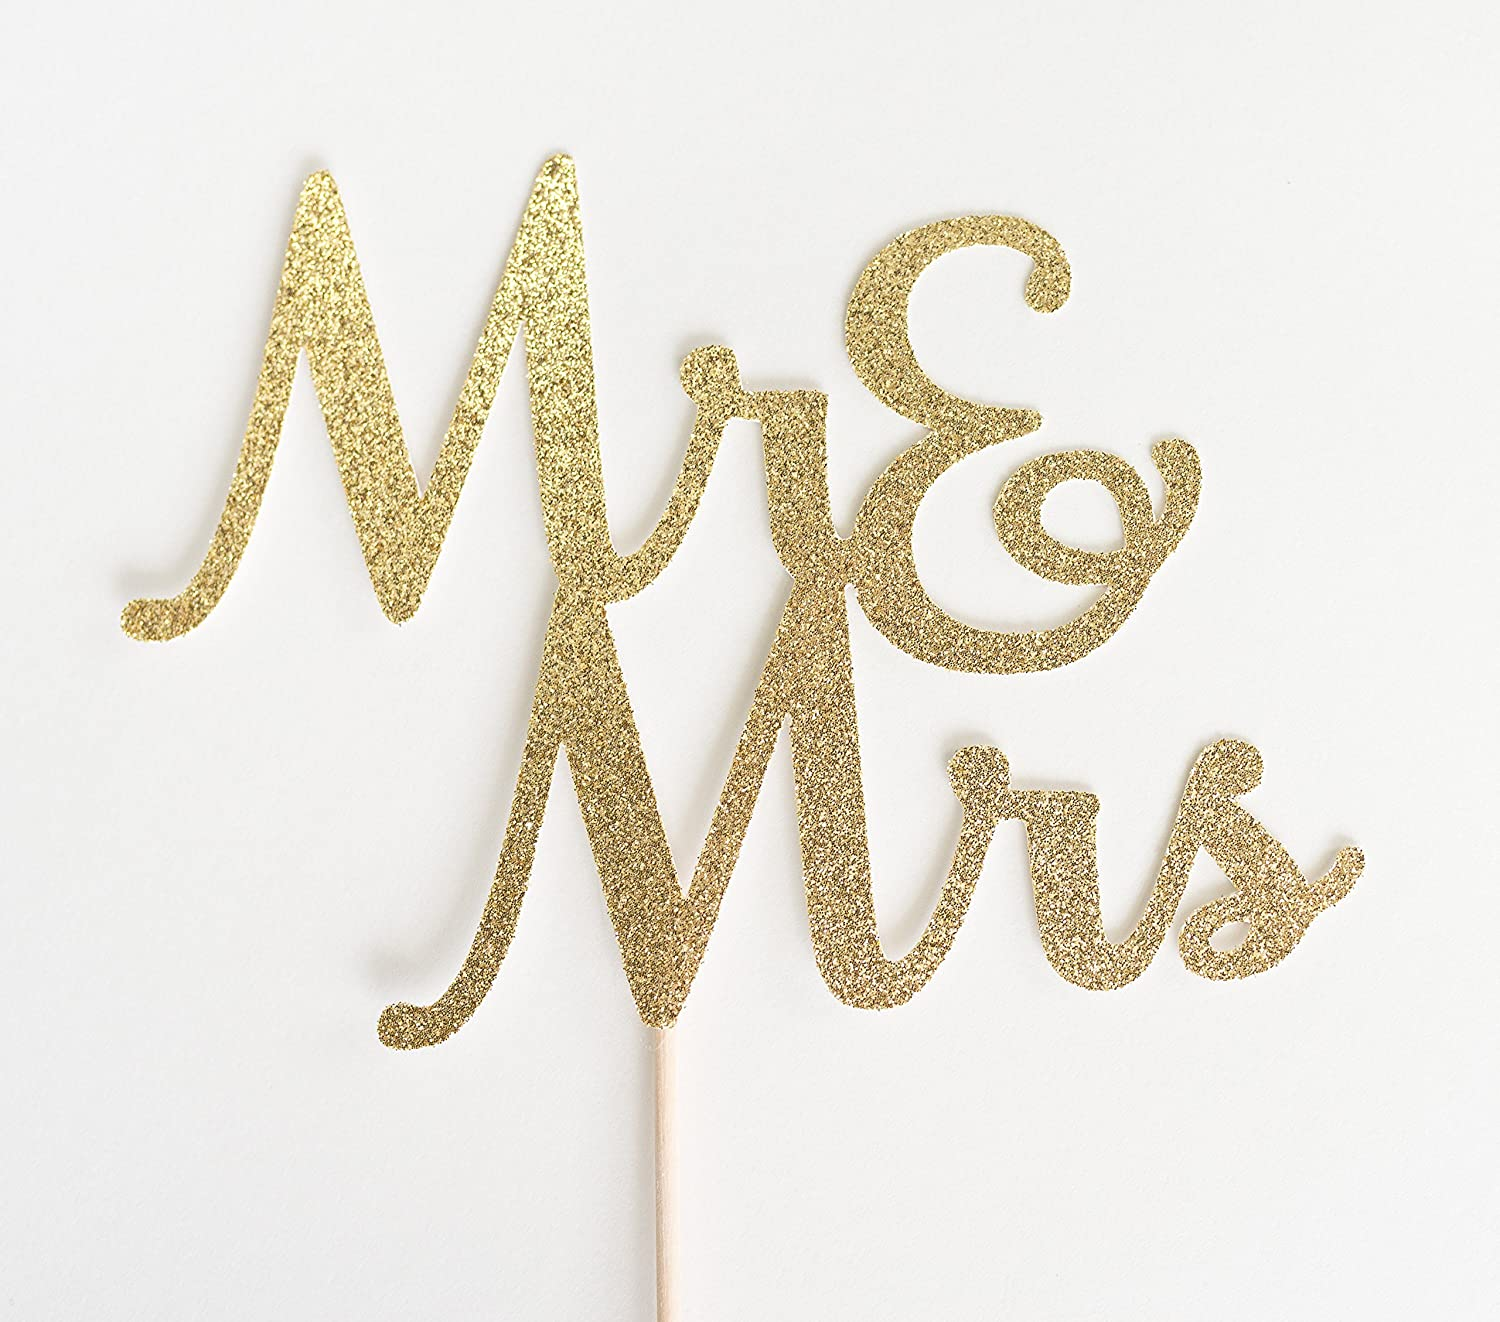 Gold Glitter Mr & Mrs Script Wedding Cake Topper, and, Rehearsal dinner, engagement party